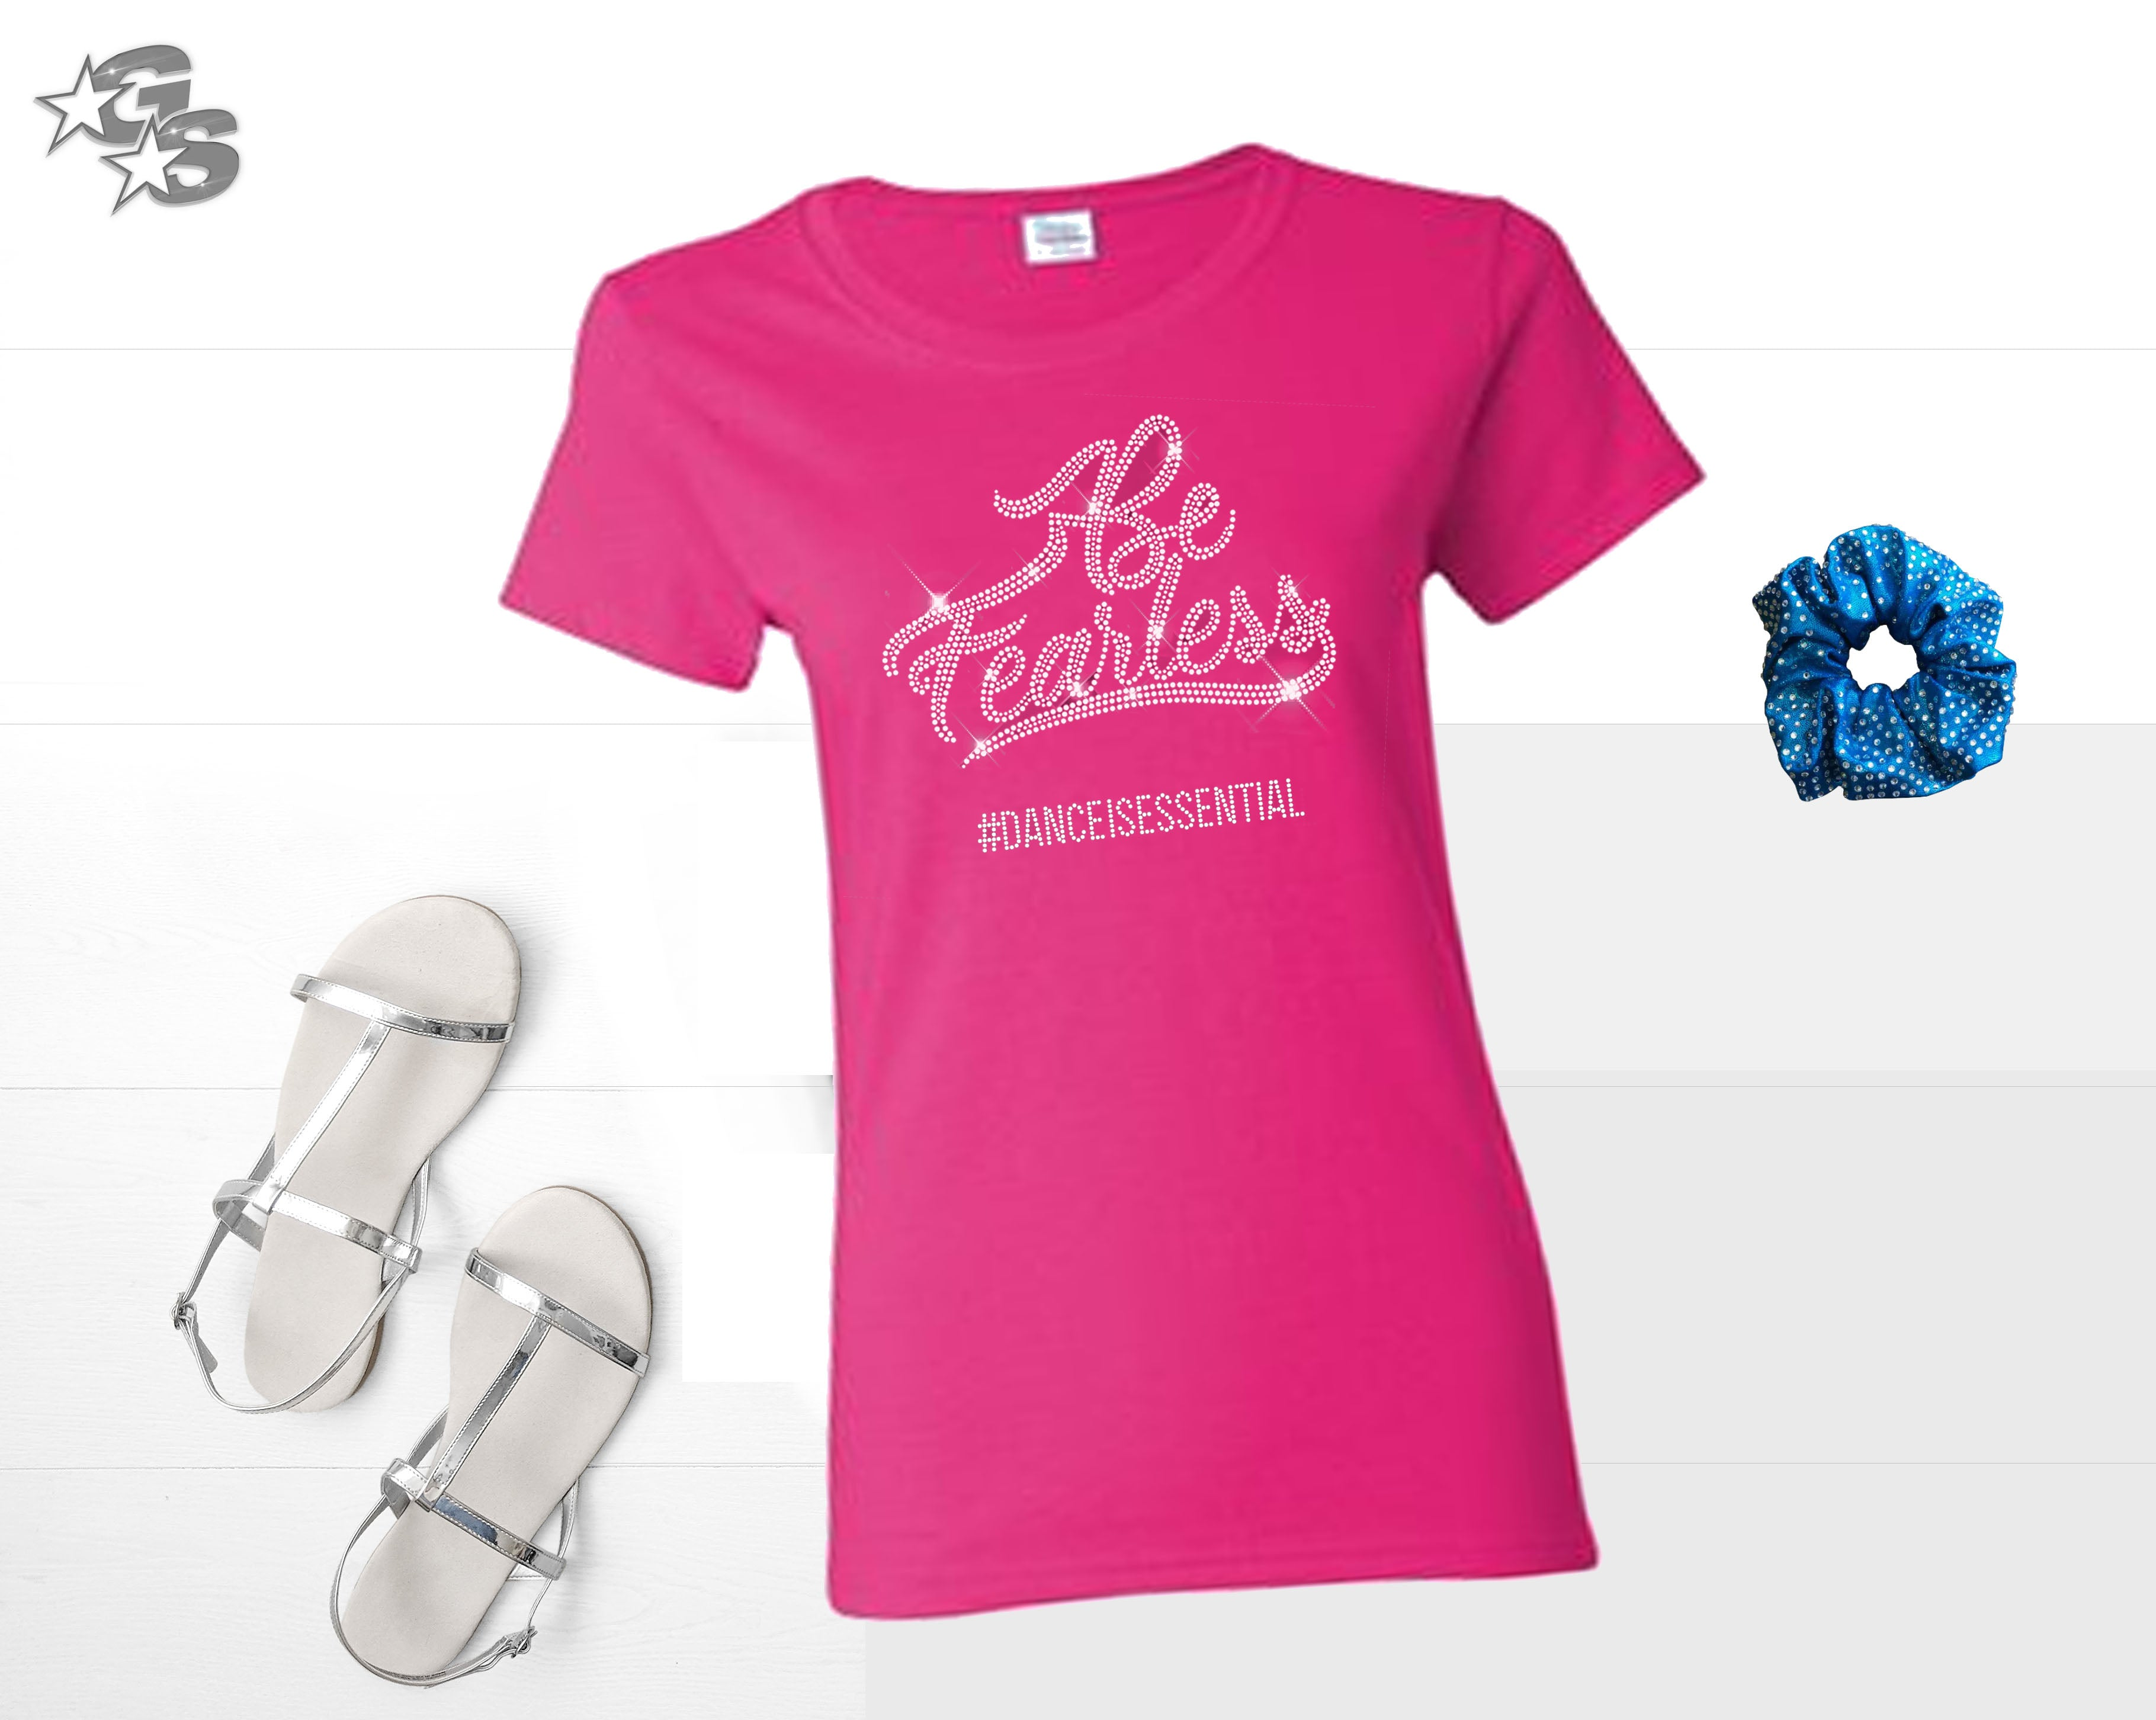 Be Fearless Fitted Tee - Pink (Bling) - Dance or Cheer or Gymnastics